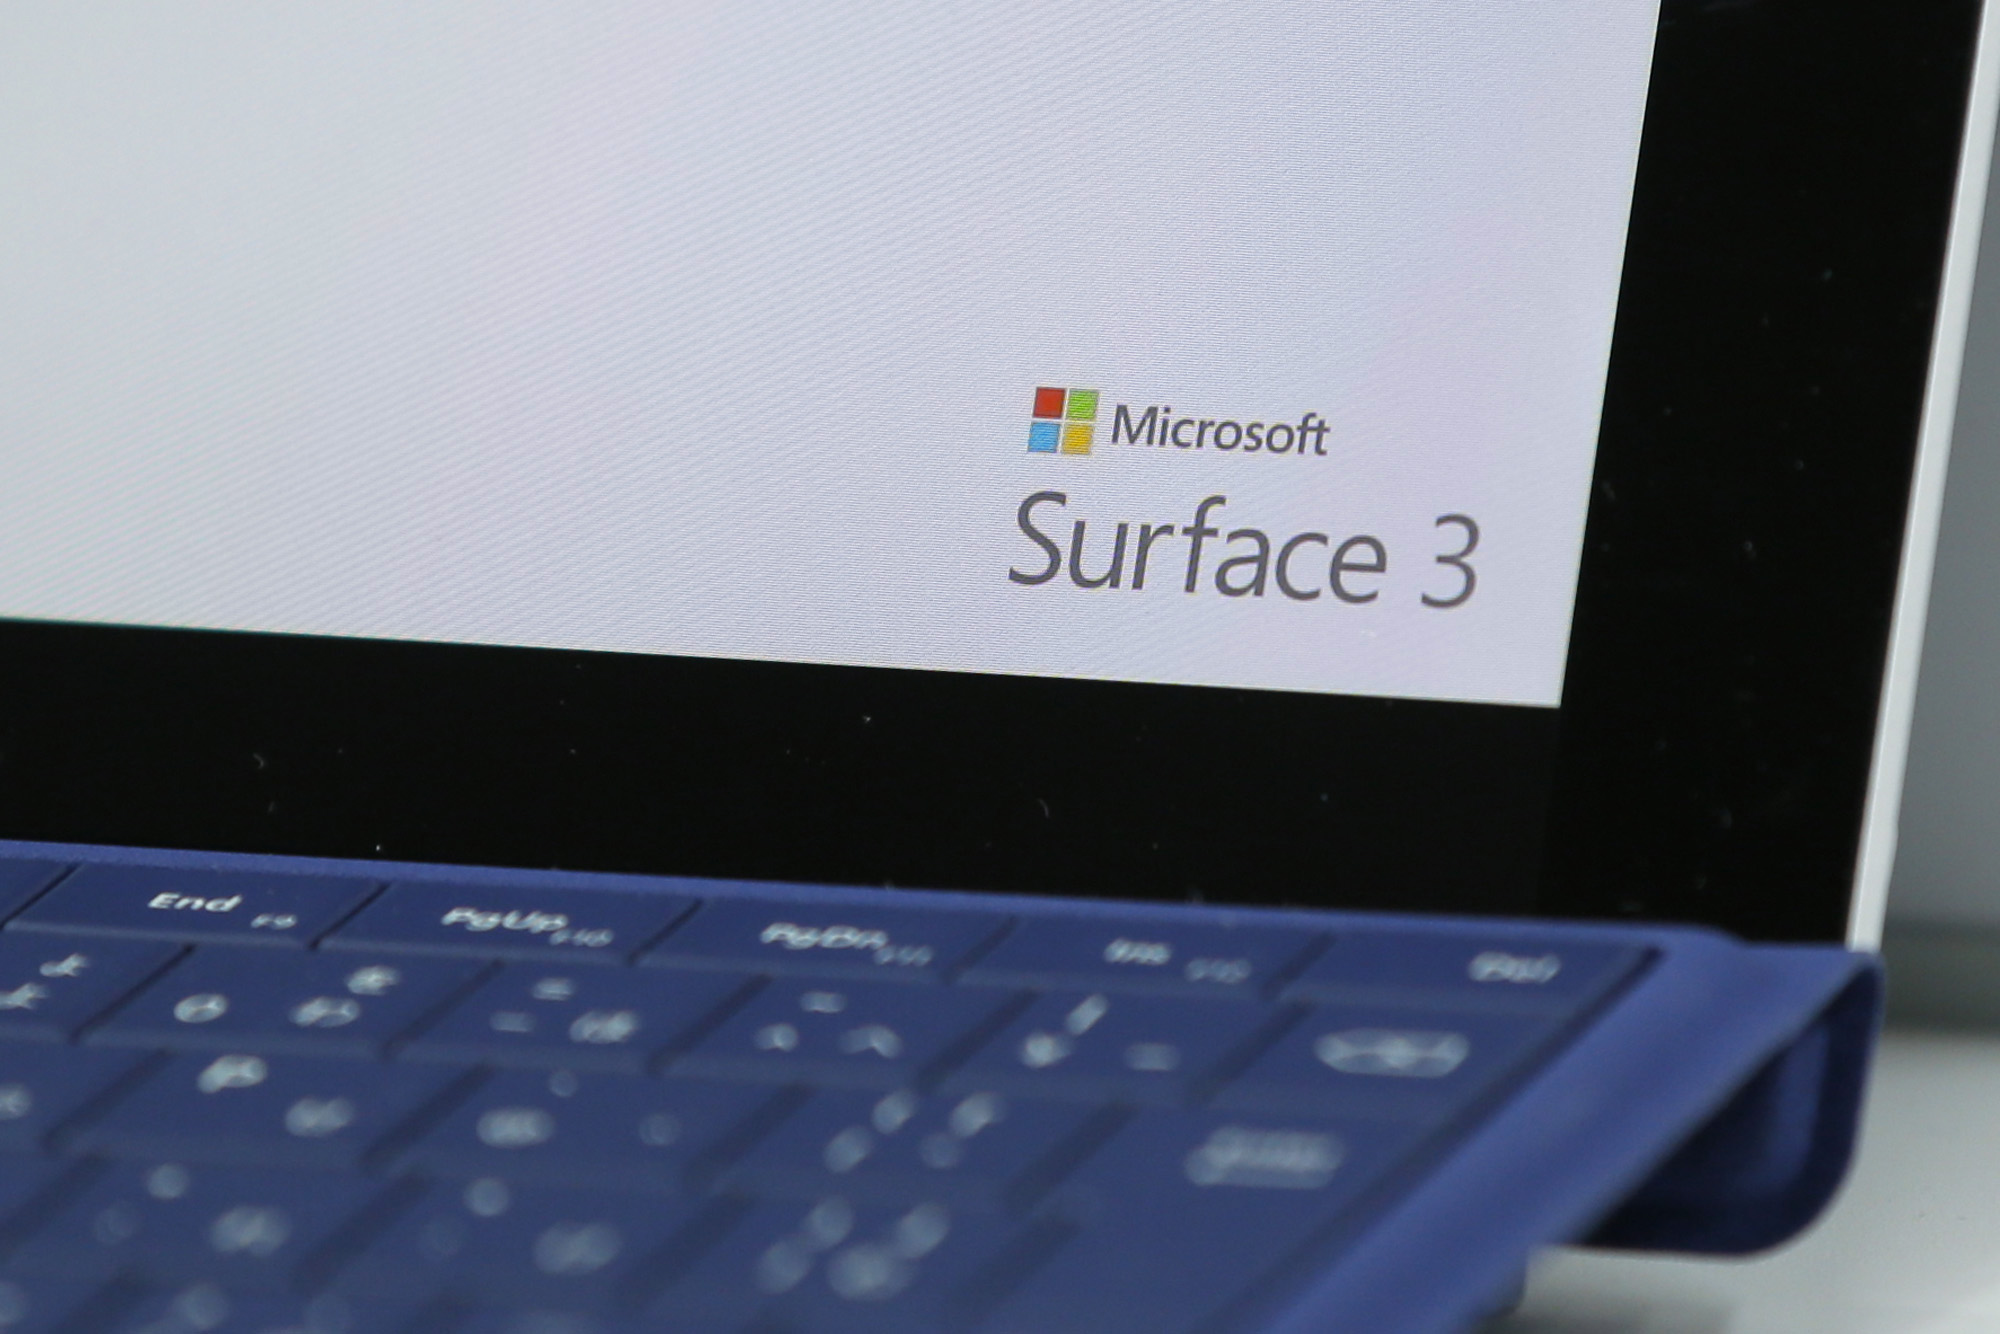 The logo for Microsoft Corp.'s Surface 3 LTE tablet is displayed on the device at a Bic Camera Inc. electronics store in Tokyo, Japan, on Friday, June 19, 2015.